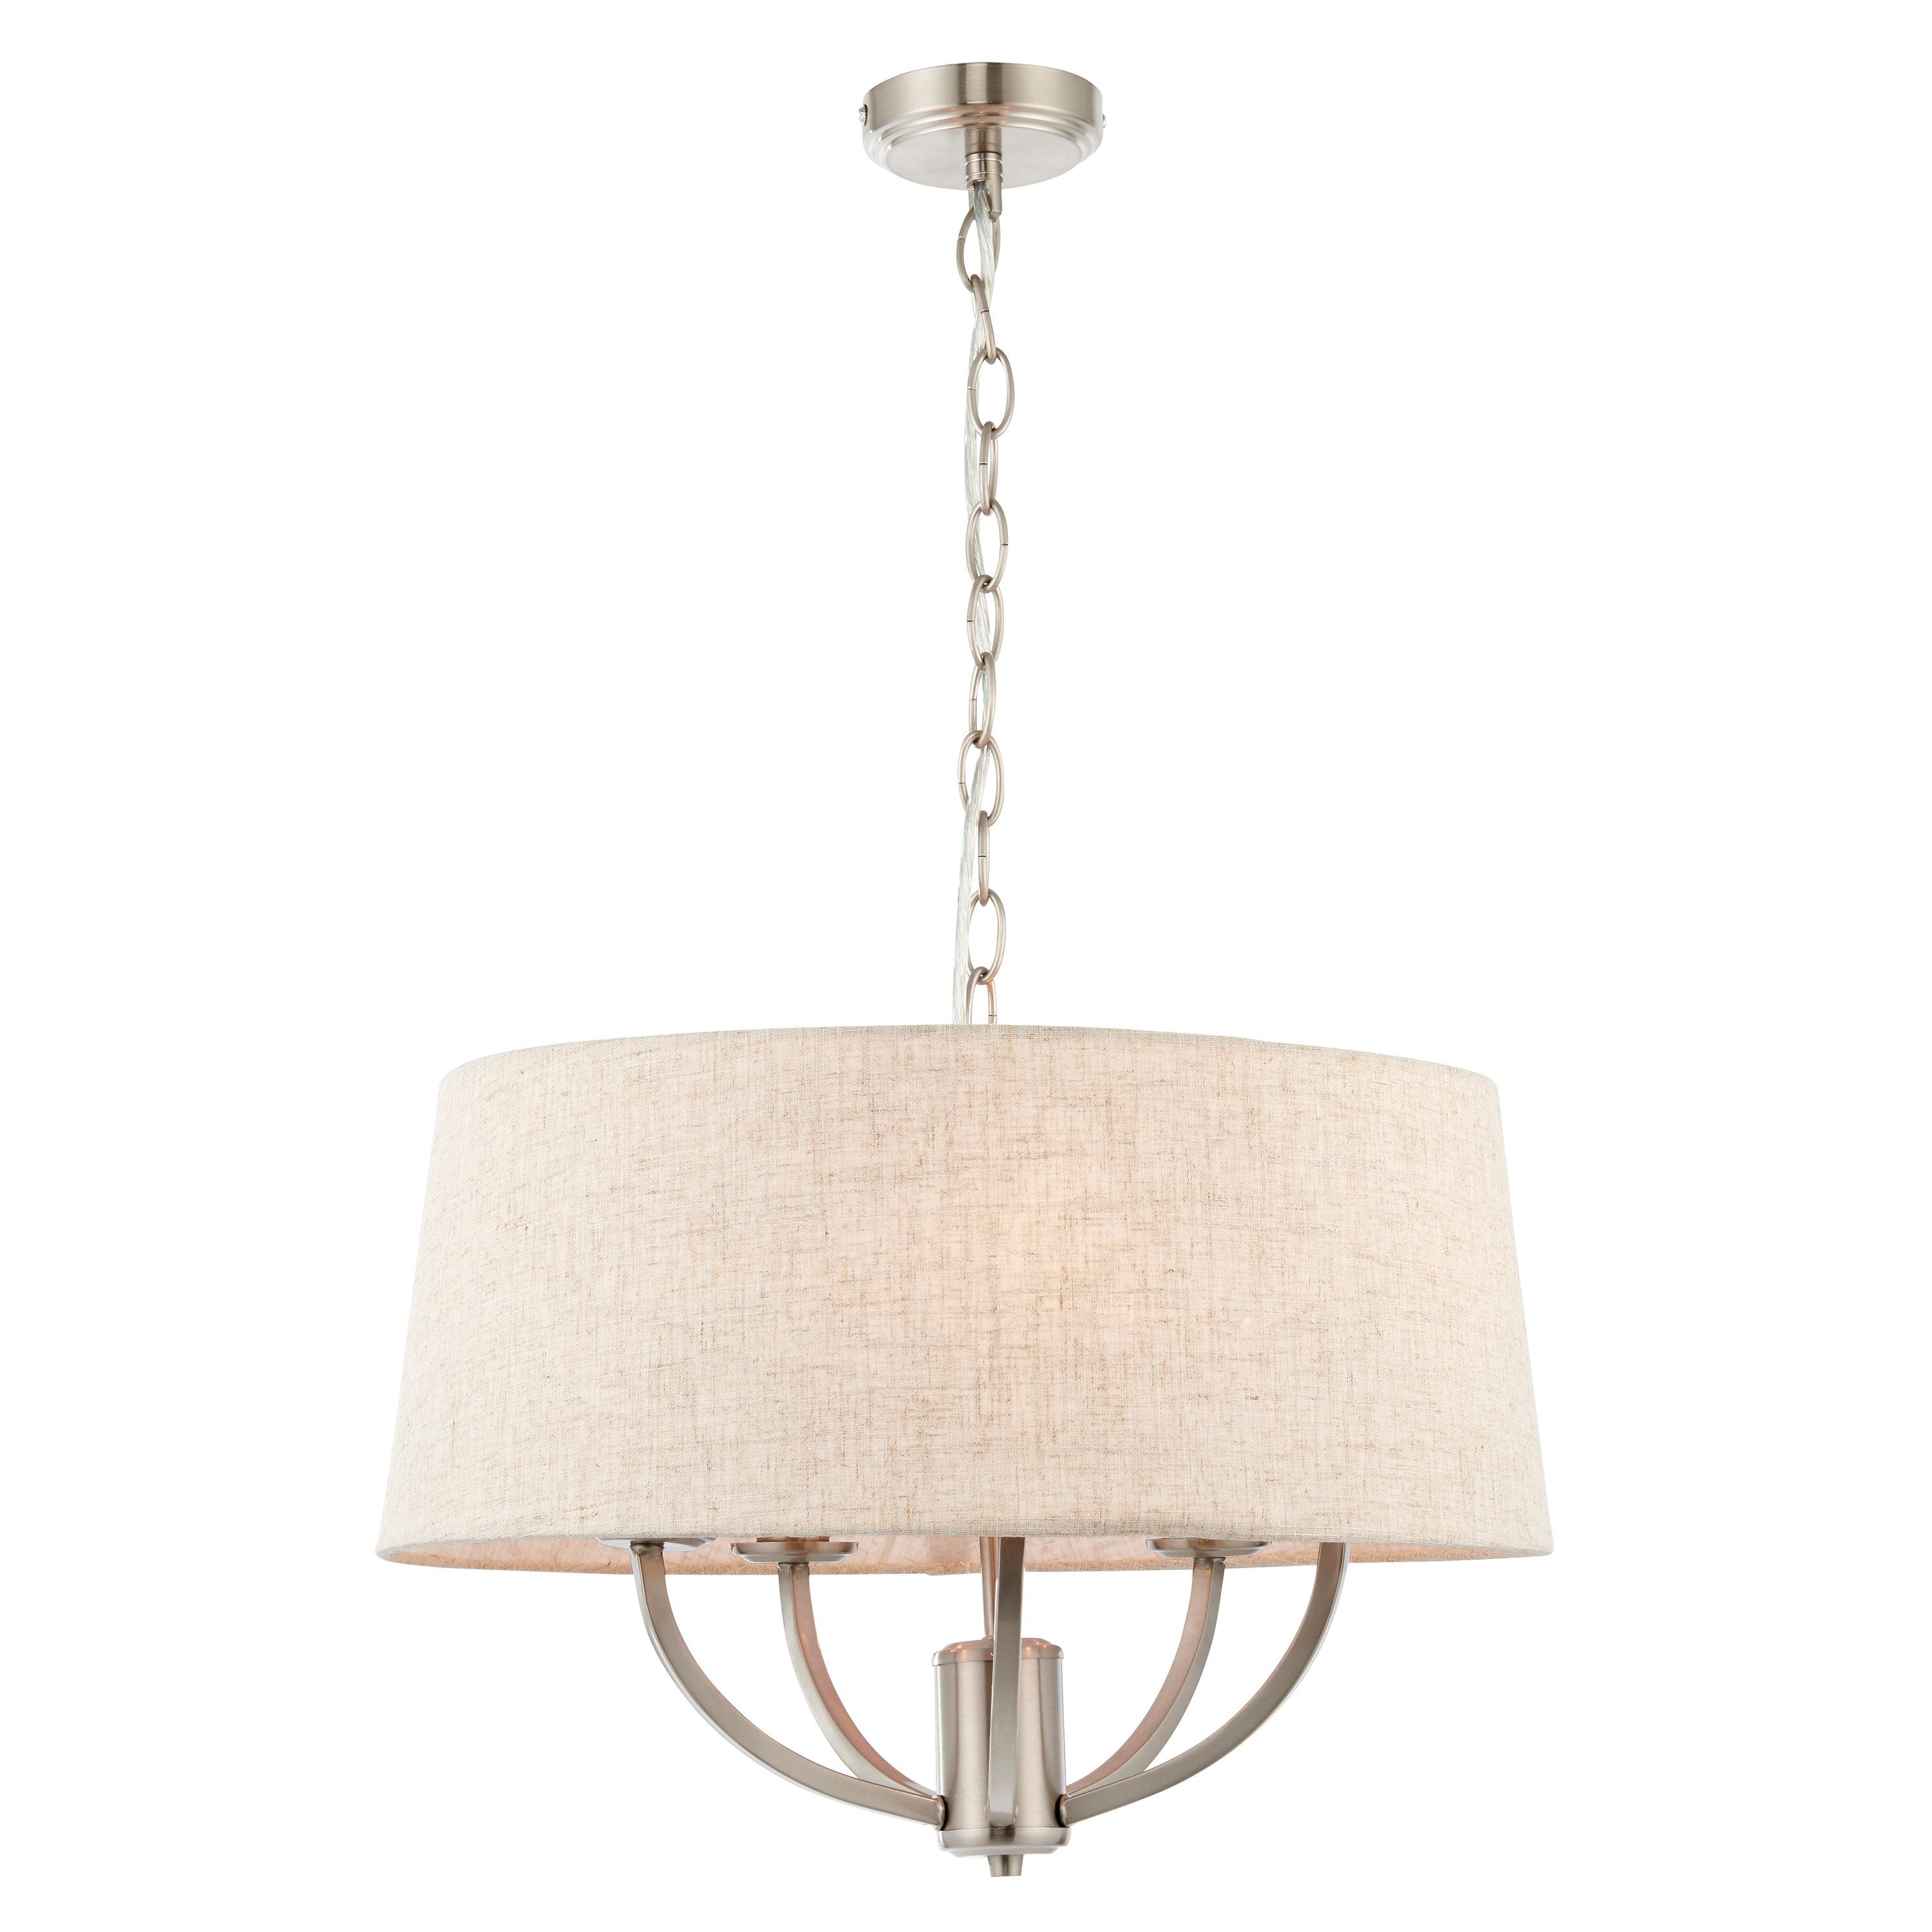 Hampstead natural linen 5 lamp ceiling pendant light departments hampstead natural linen 5 lamp ceiling pendant light departments diy at bq aloadofball Gallery